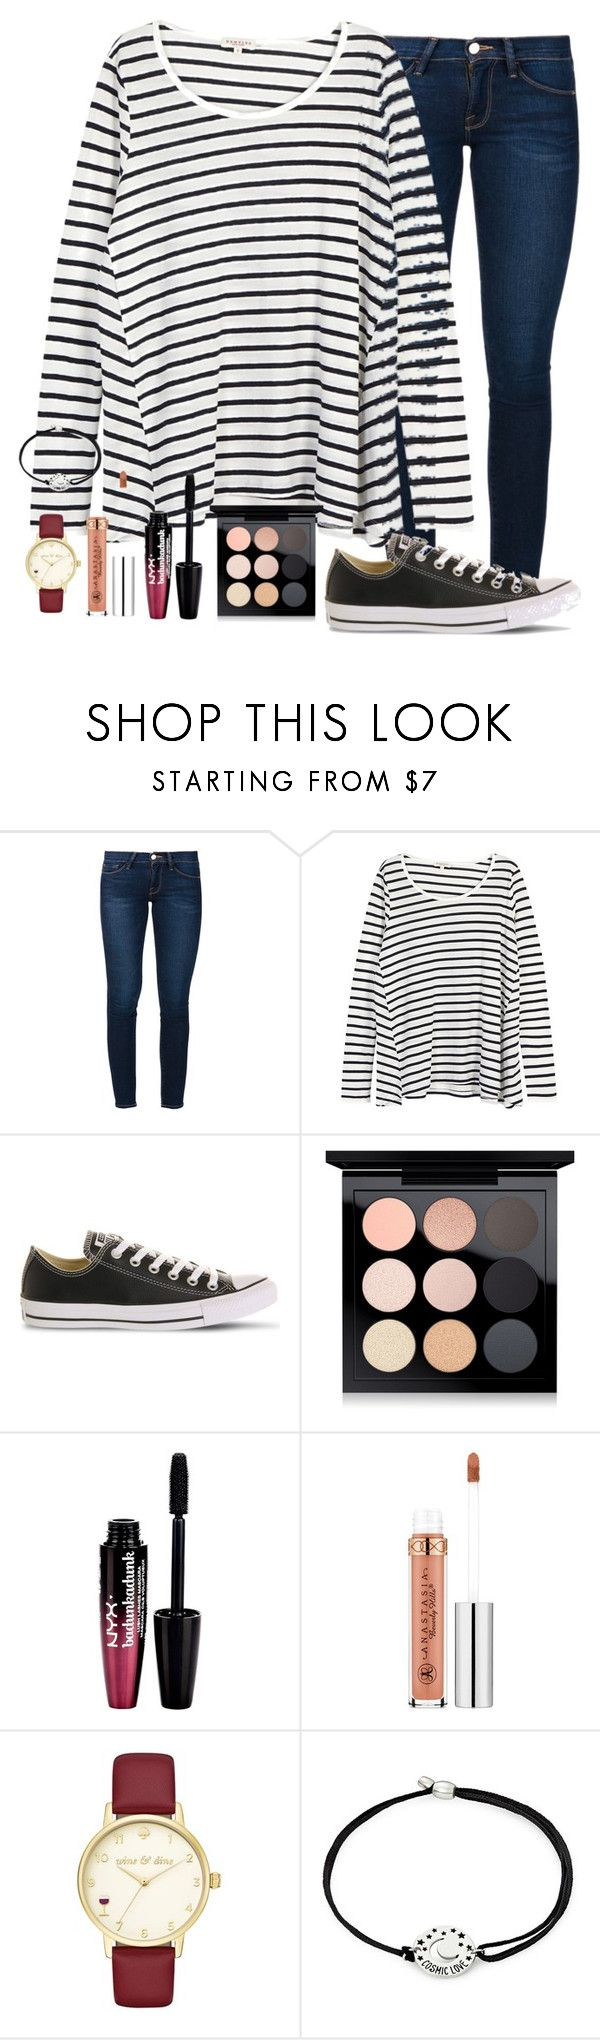 """""""I have to clean so much today😩"""" by torideckerrr ❤ liked on Polyvore featuring Frame, Demylee, Converse, MAC Cosmetics, Charlotte Russe, Anastasia Beverly Hills, Kate Spade and Alex and Ani"""